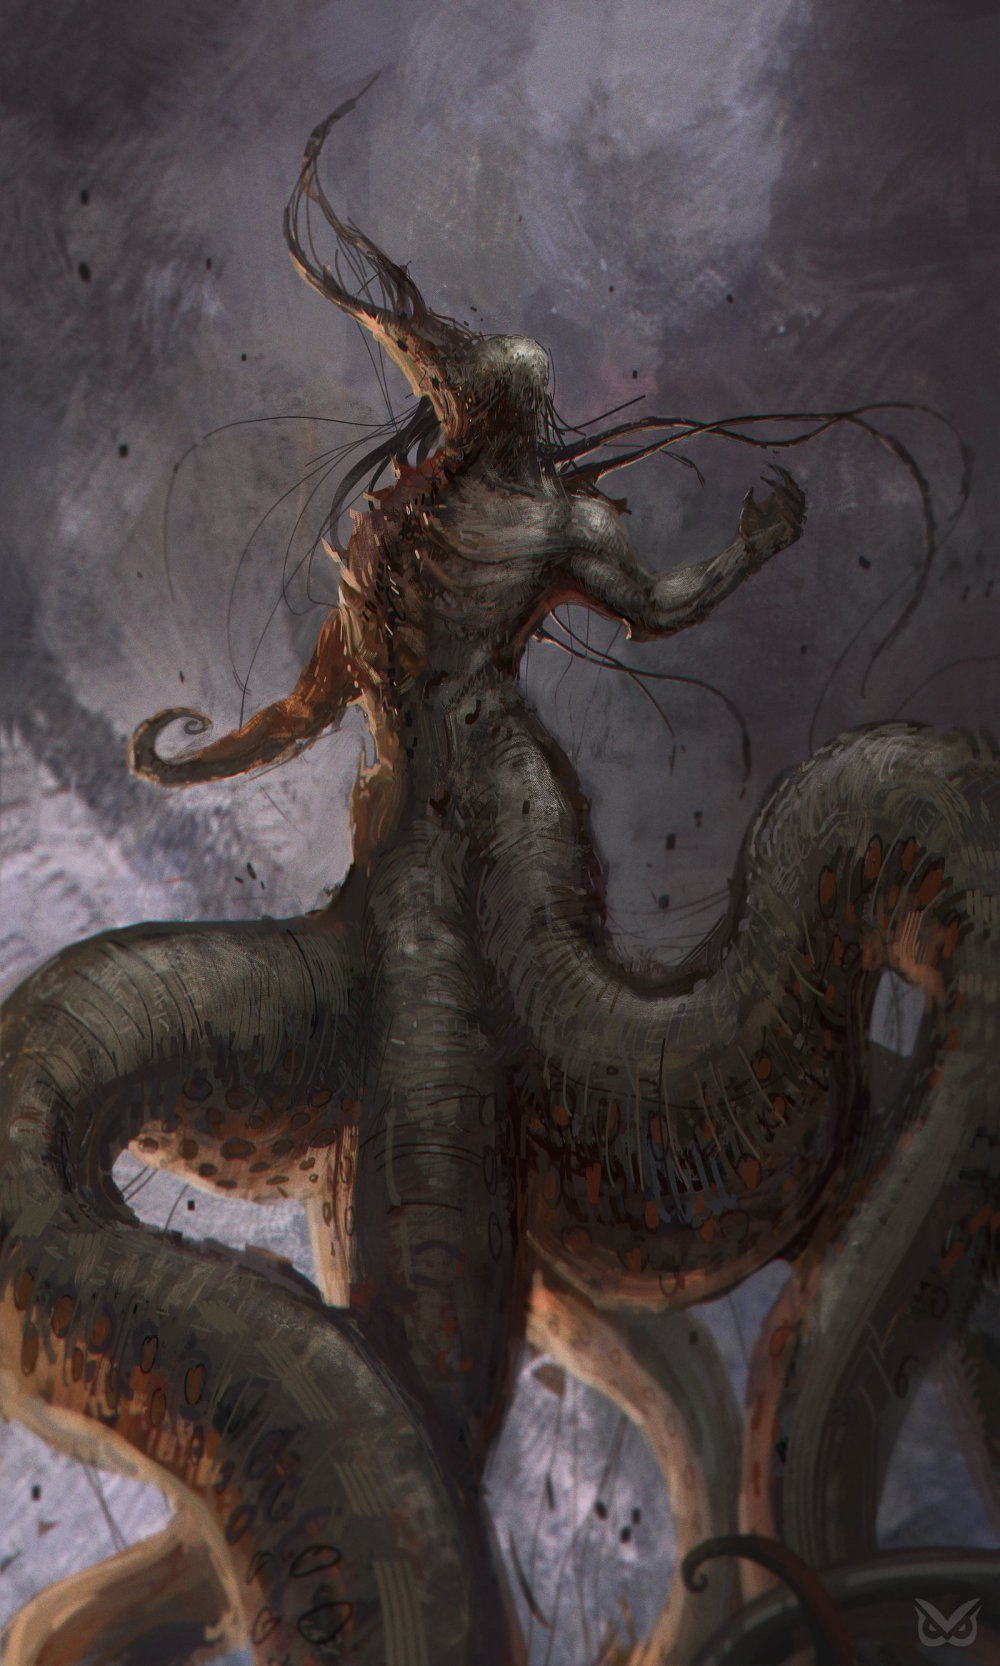 nyarlathotep_by_darkcloud013-d8v713l.jpg